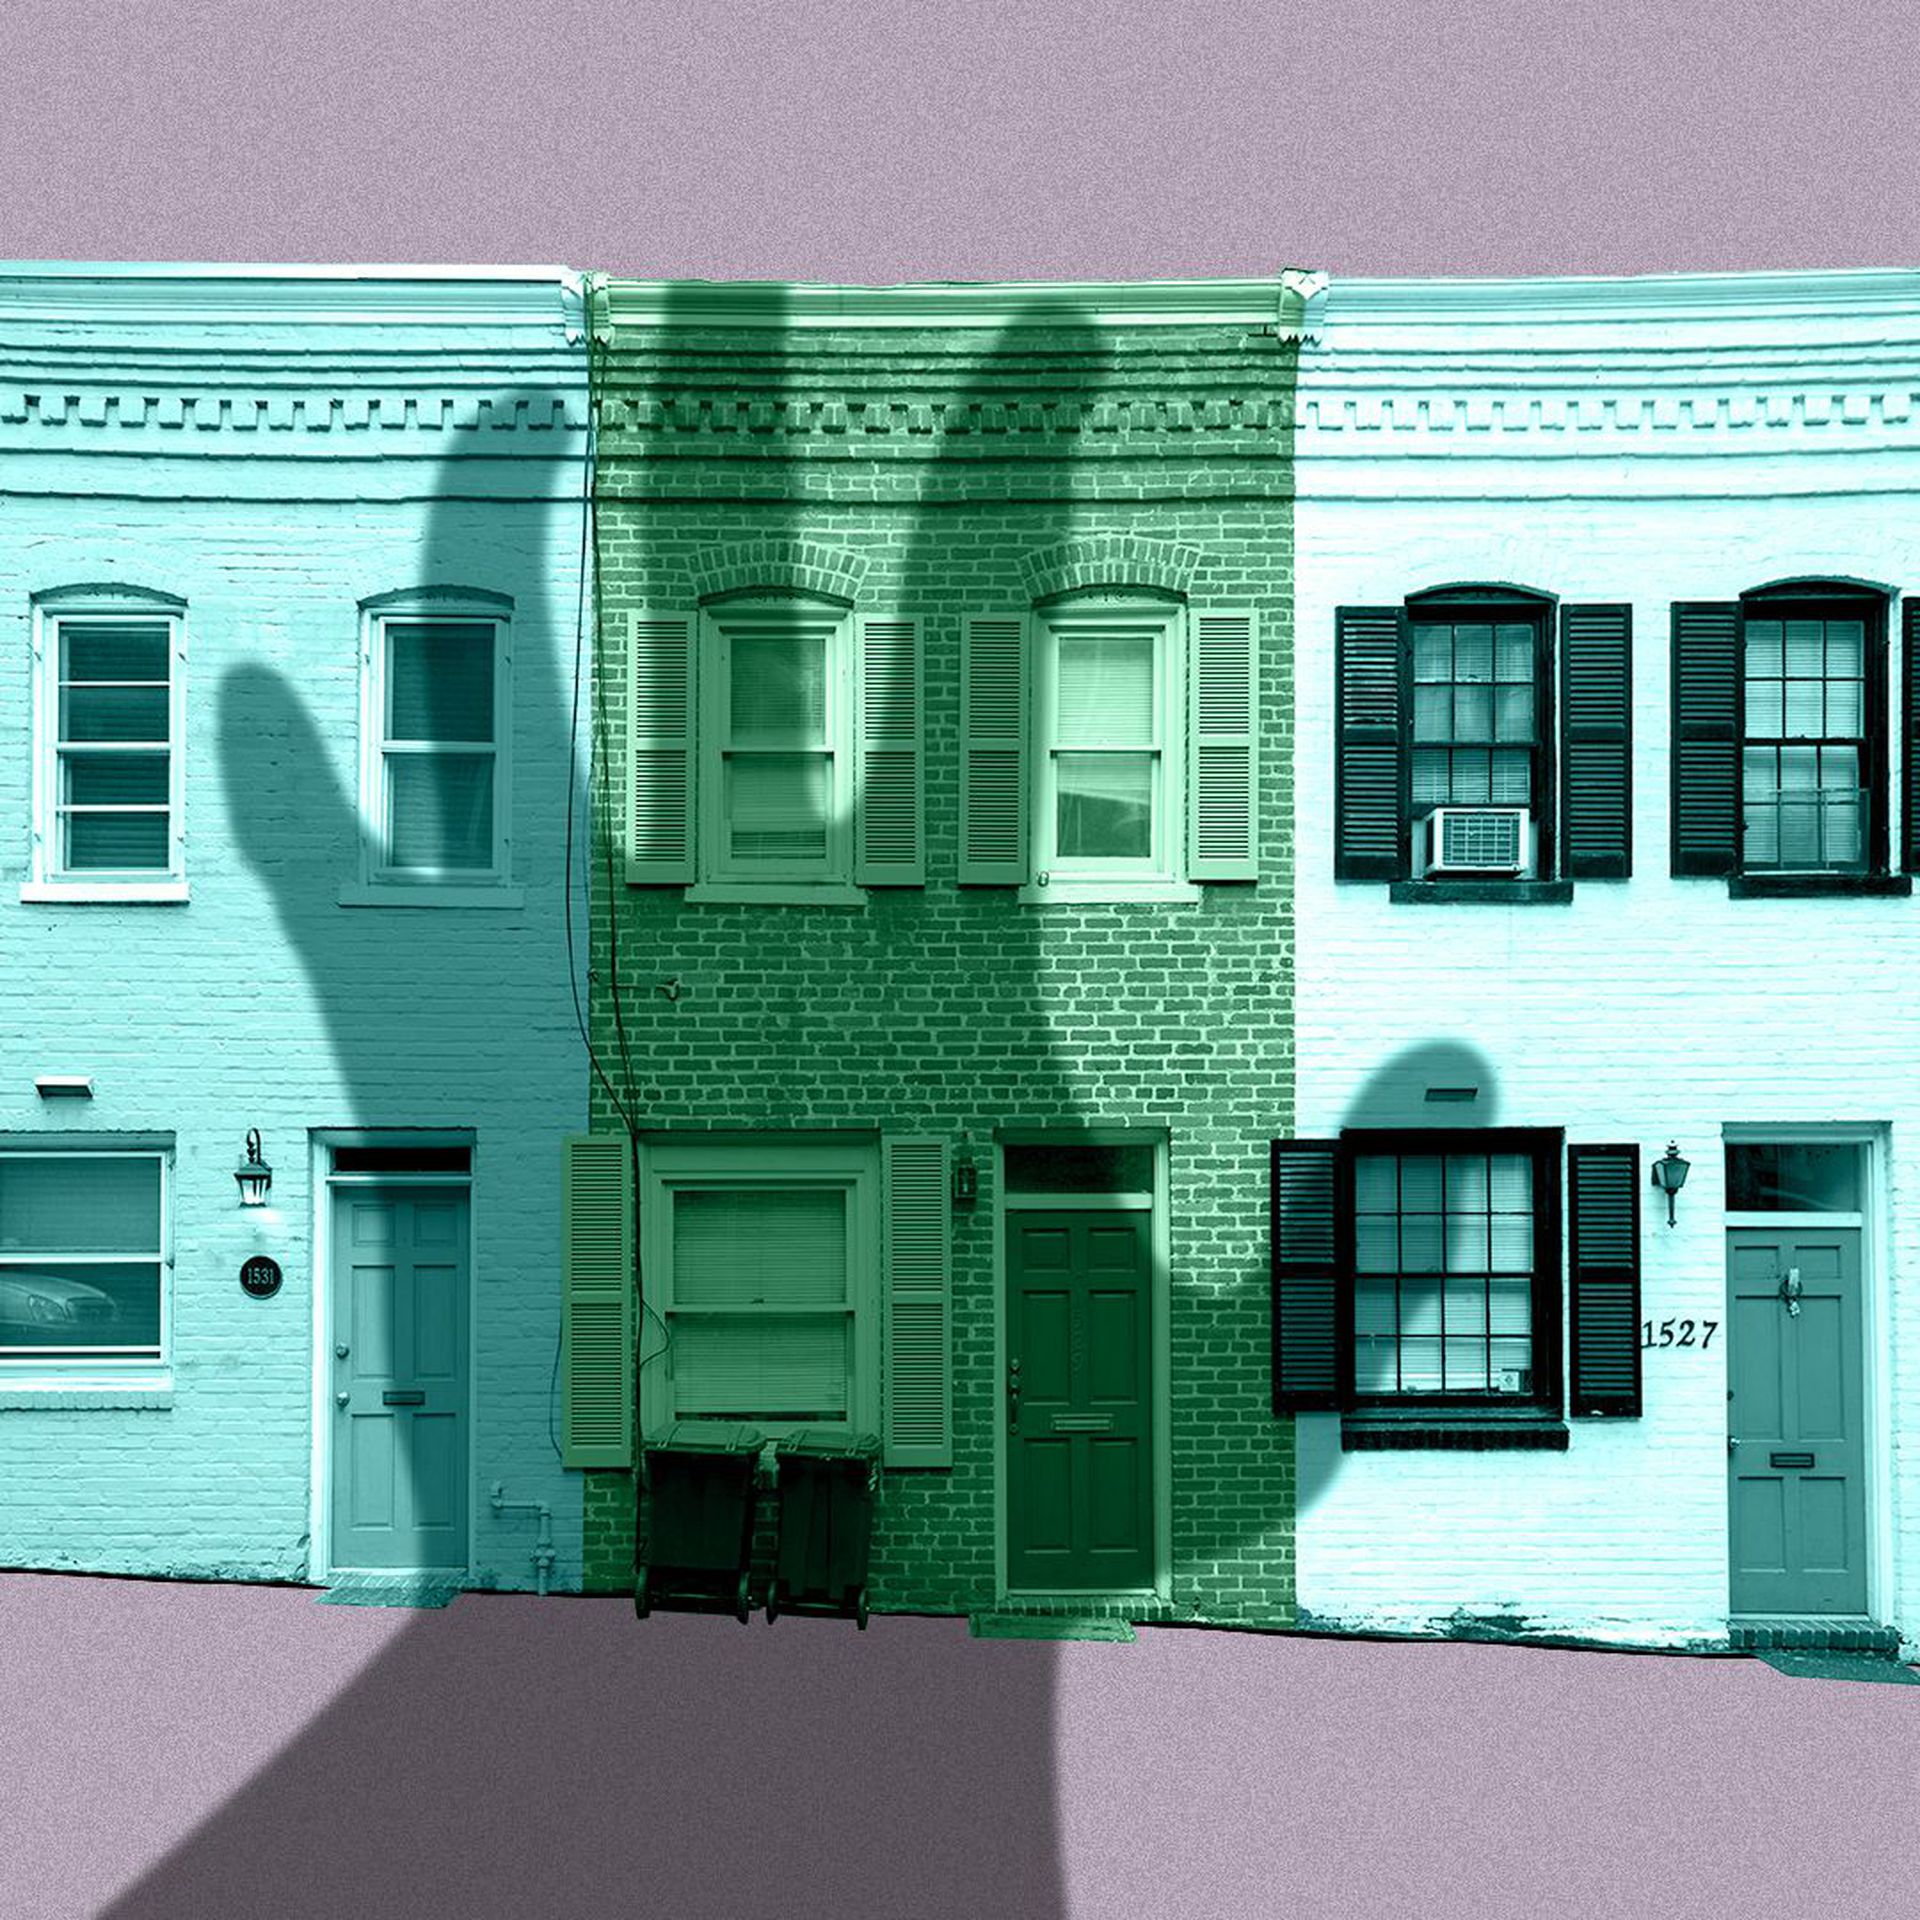 Illustration of a shadowy hand looming over three row houses.